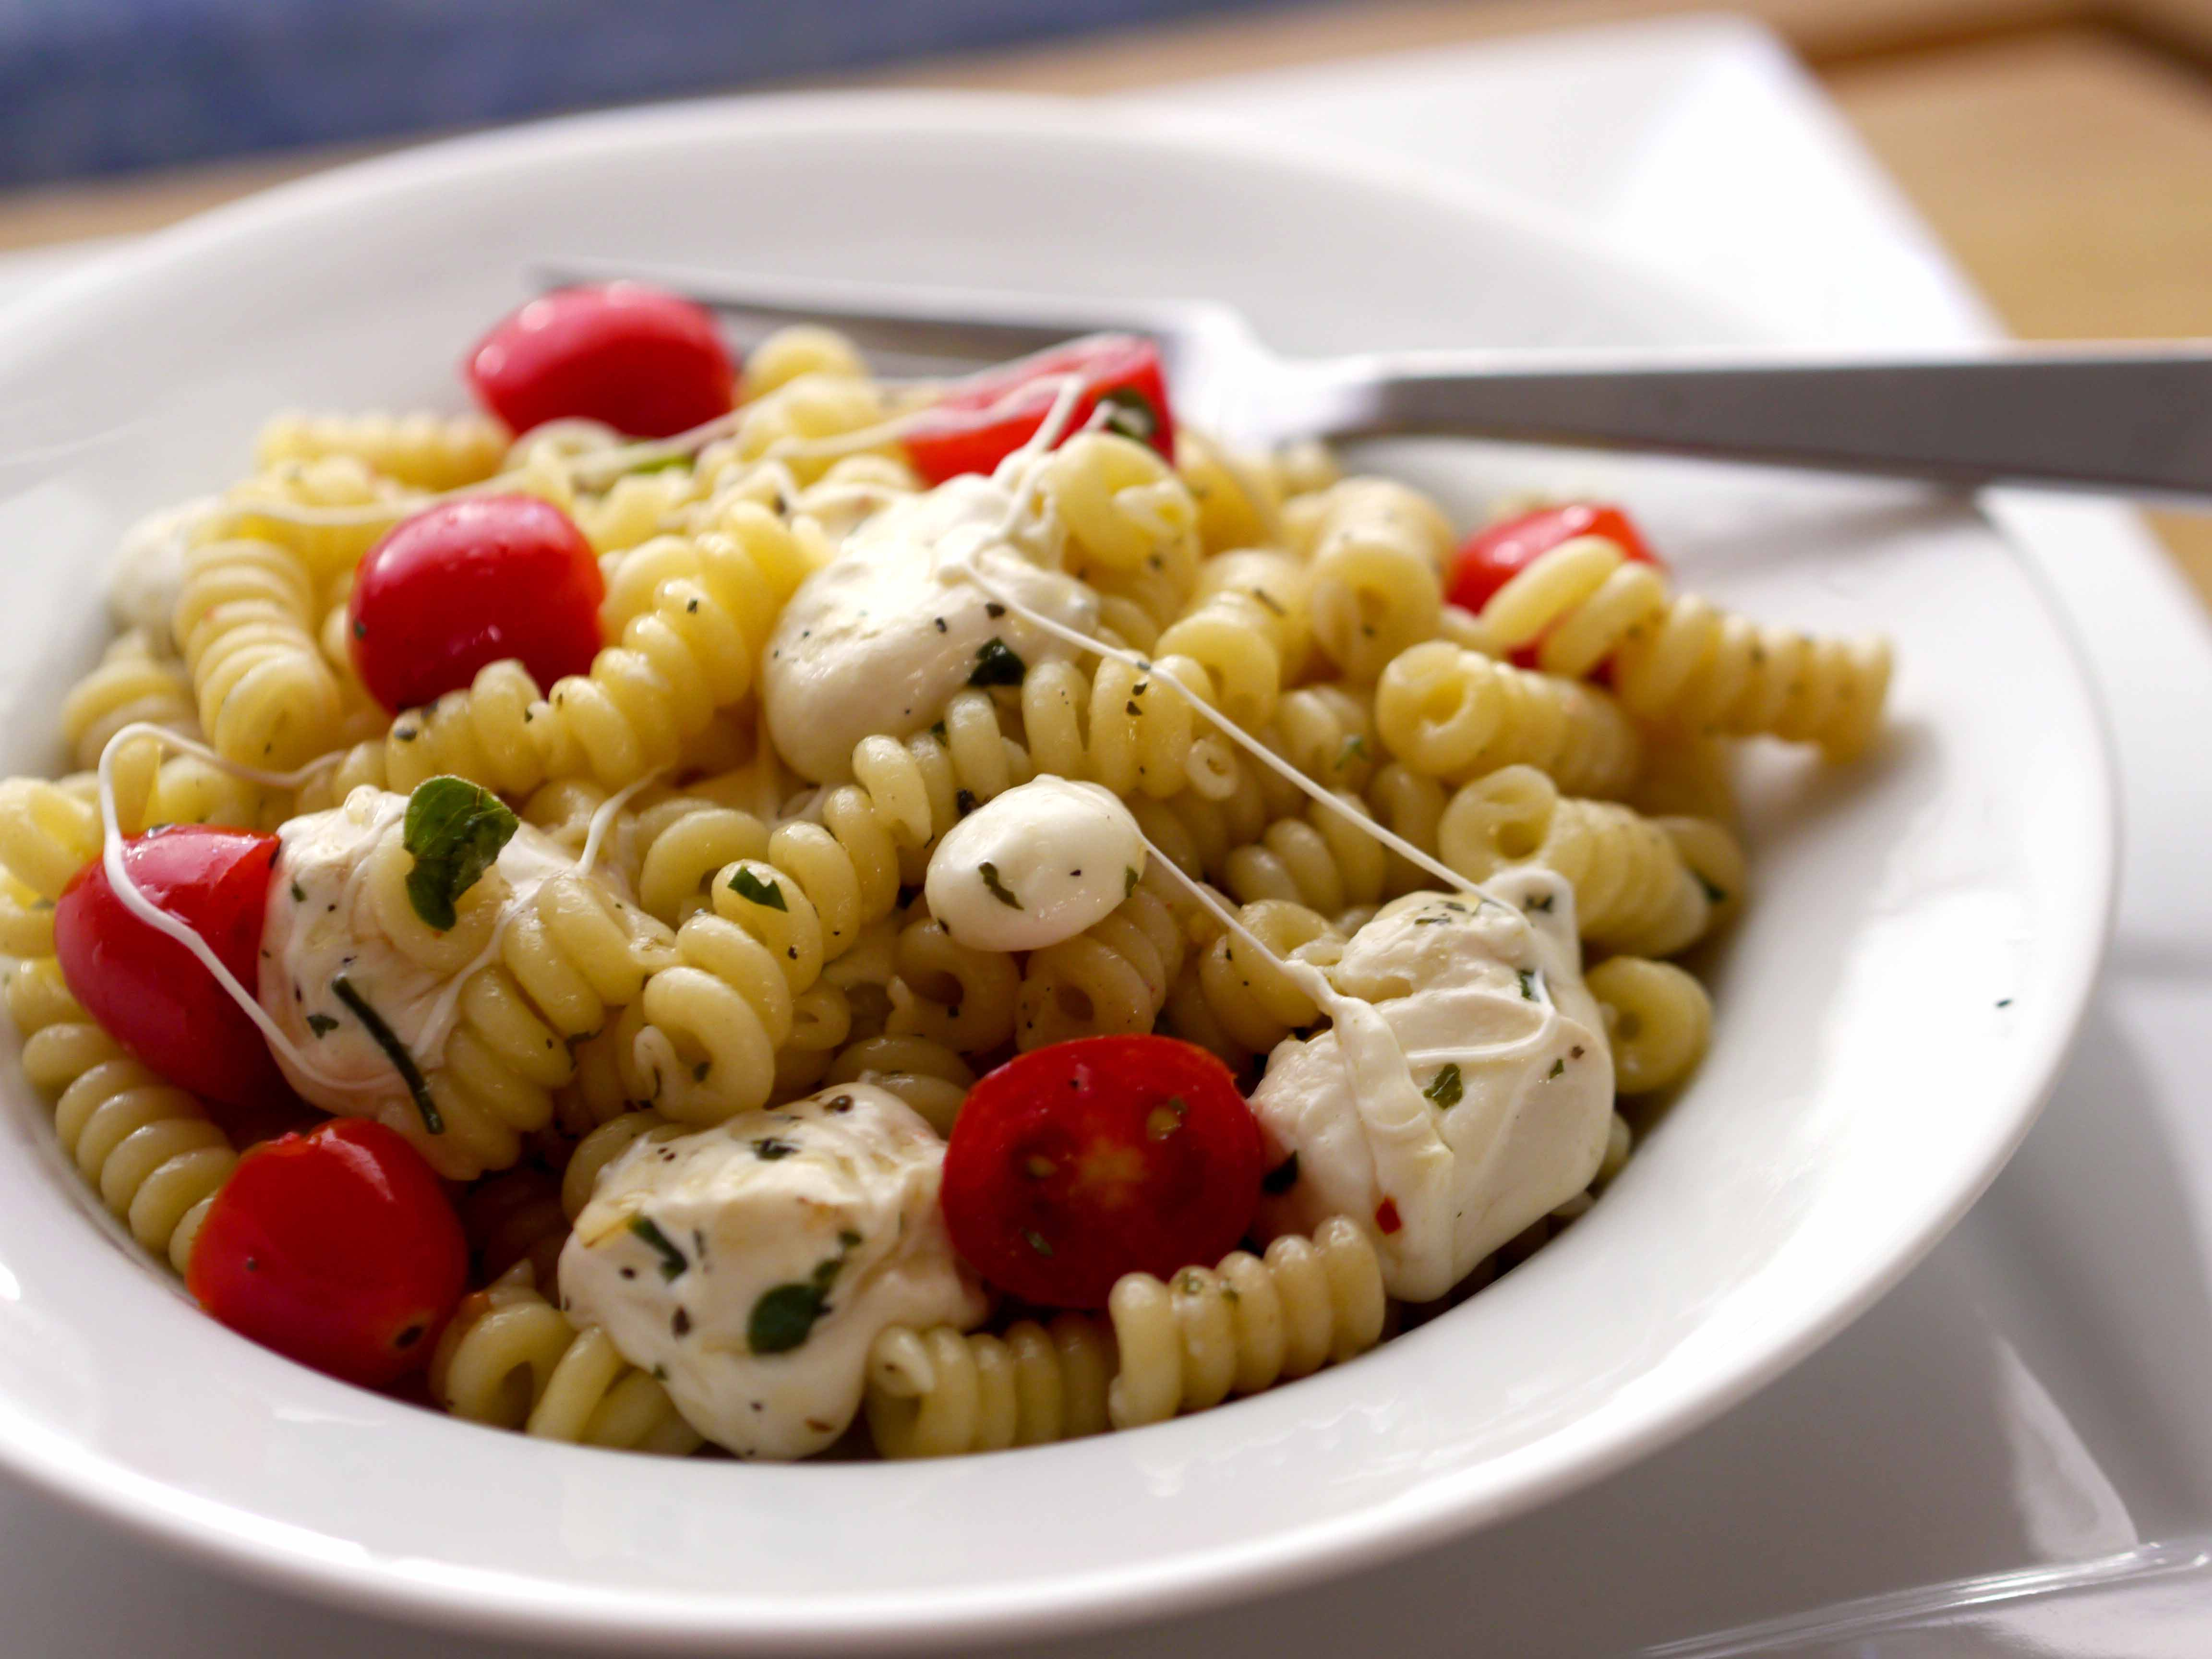 Pasta with melted mozzarella cheese